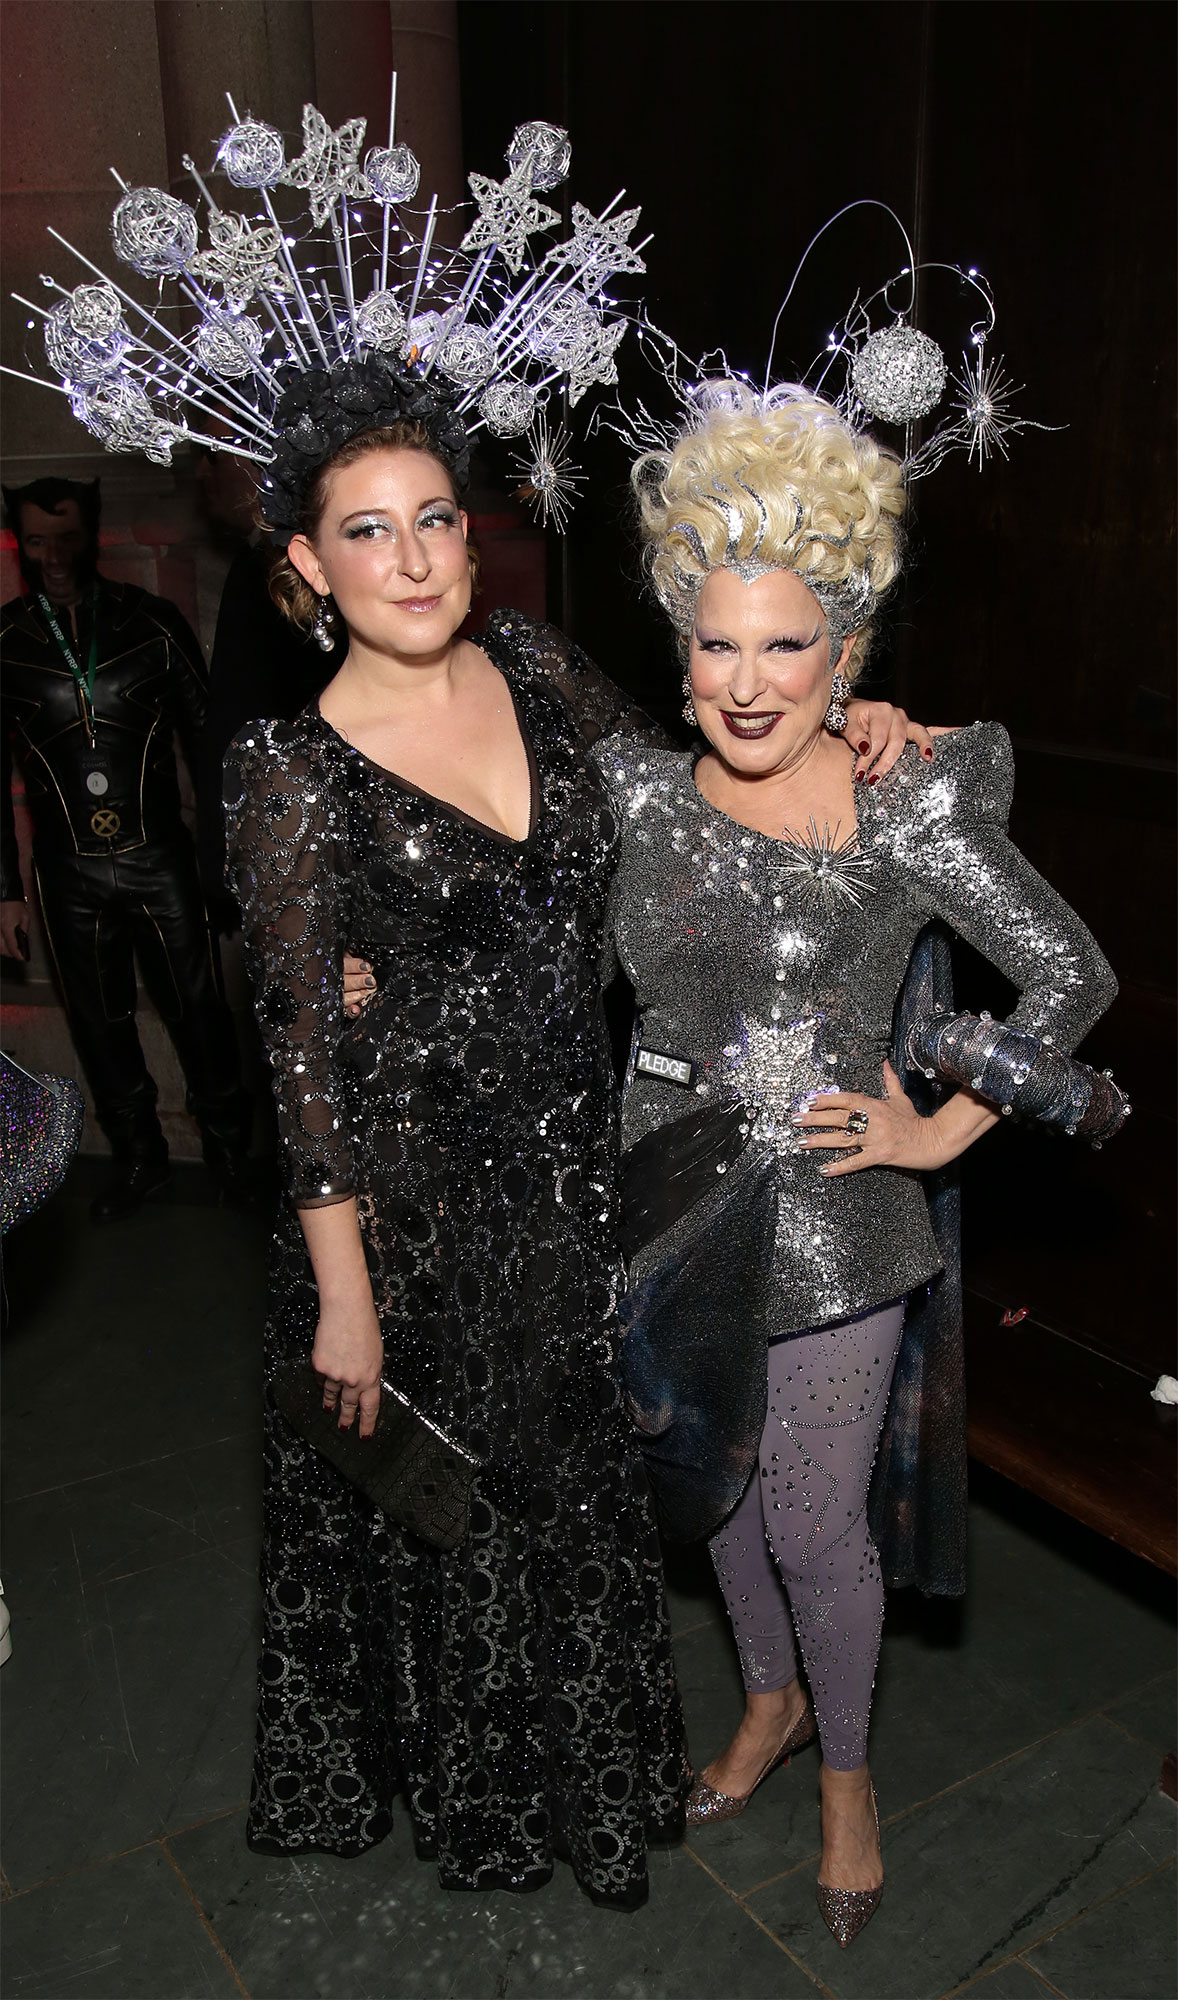 Bette Midler's New York Restoration Project Hosts 22nd Annual Hulaween Event